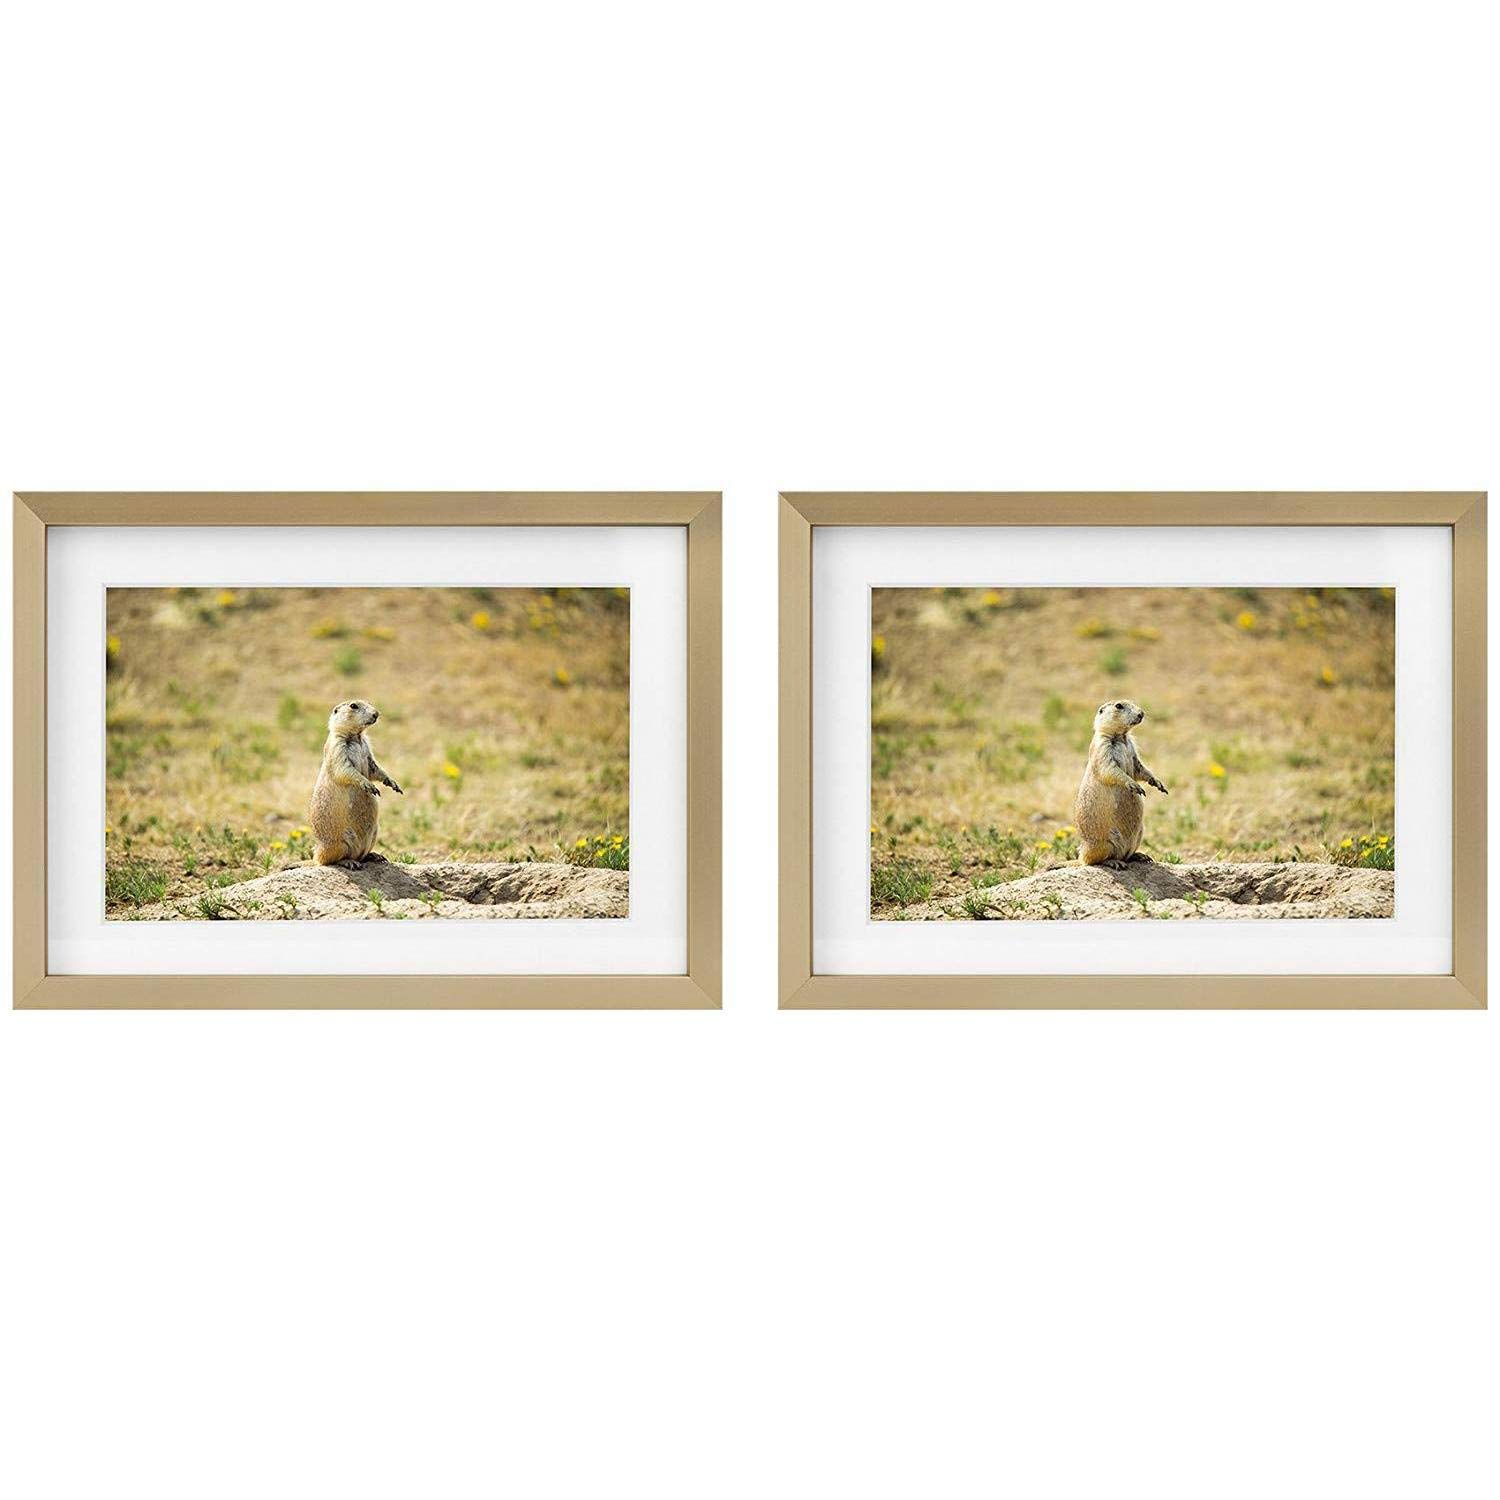 Golden State Art Two 5x7 Picture Frames - Gold Aluminum (Shiny Brushed) - Fit Photo 4x6 with Ivory Mat or 5x7 Without Mat - Metal Frame Real Glass (5x7, Set of 2, Gold) by Golden State Art